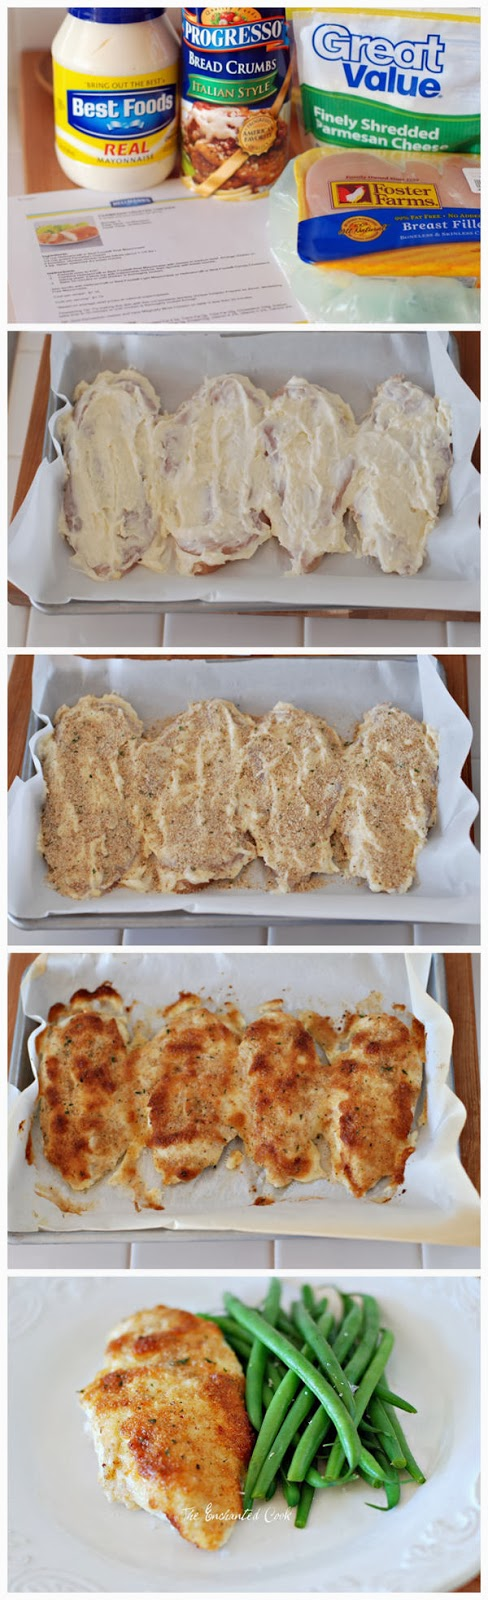 Parmesan Crusted Chicken - Latest Food